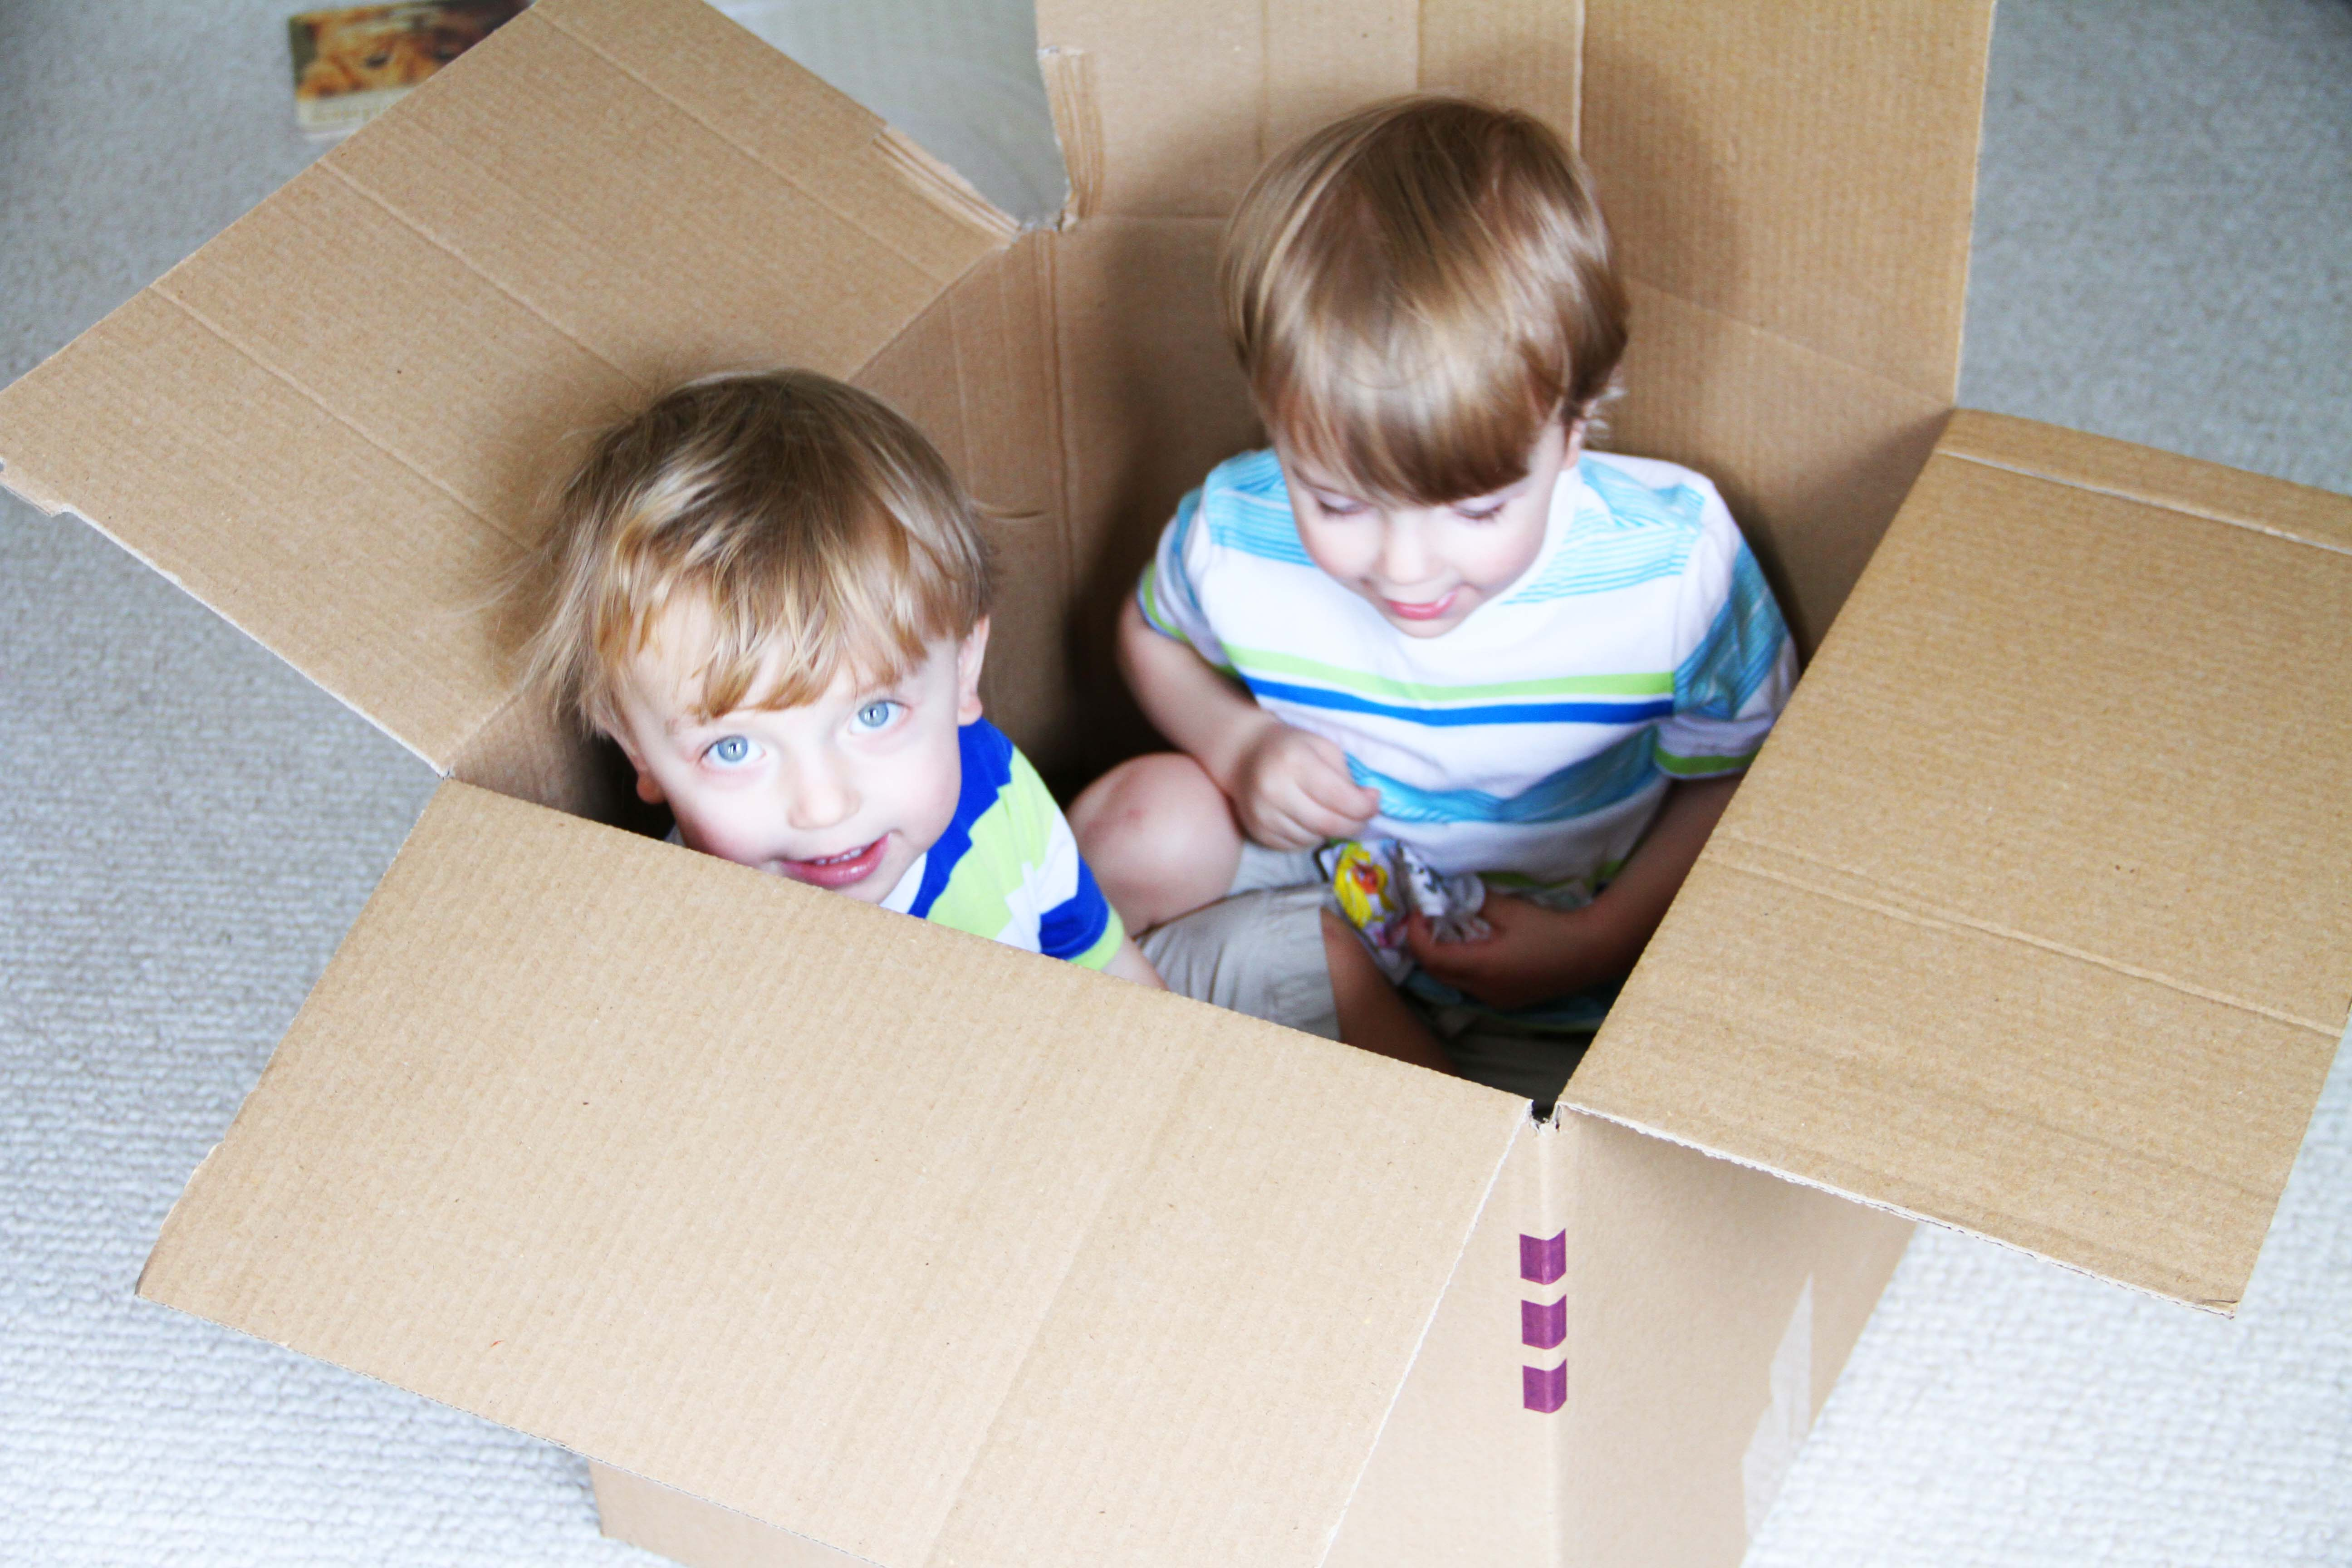 twins playingi n packing boxes